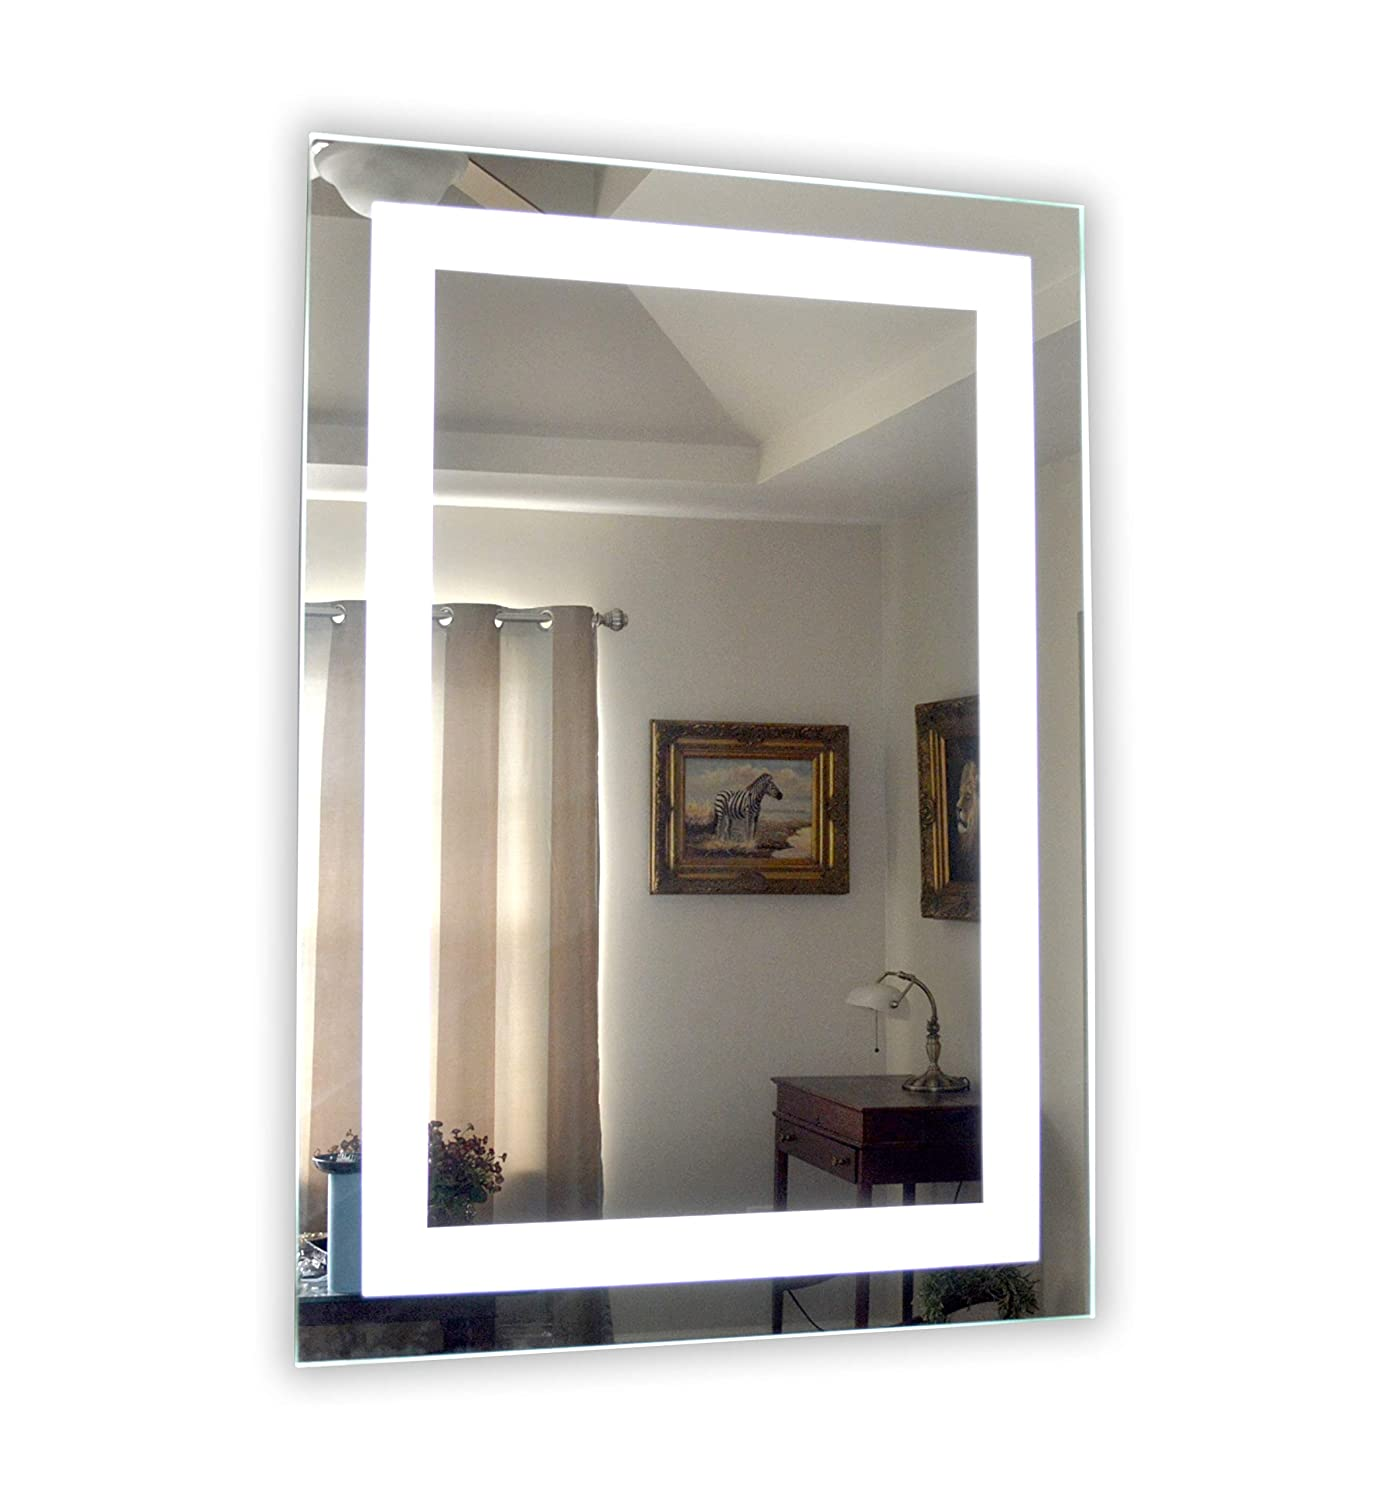 233 & LED Front-Lighted Bathroom Vanity Mirror: 28\